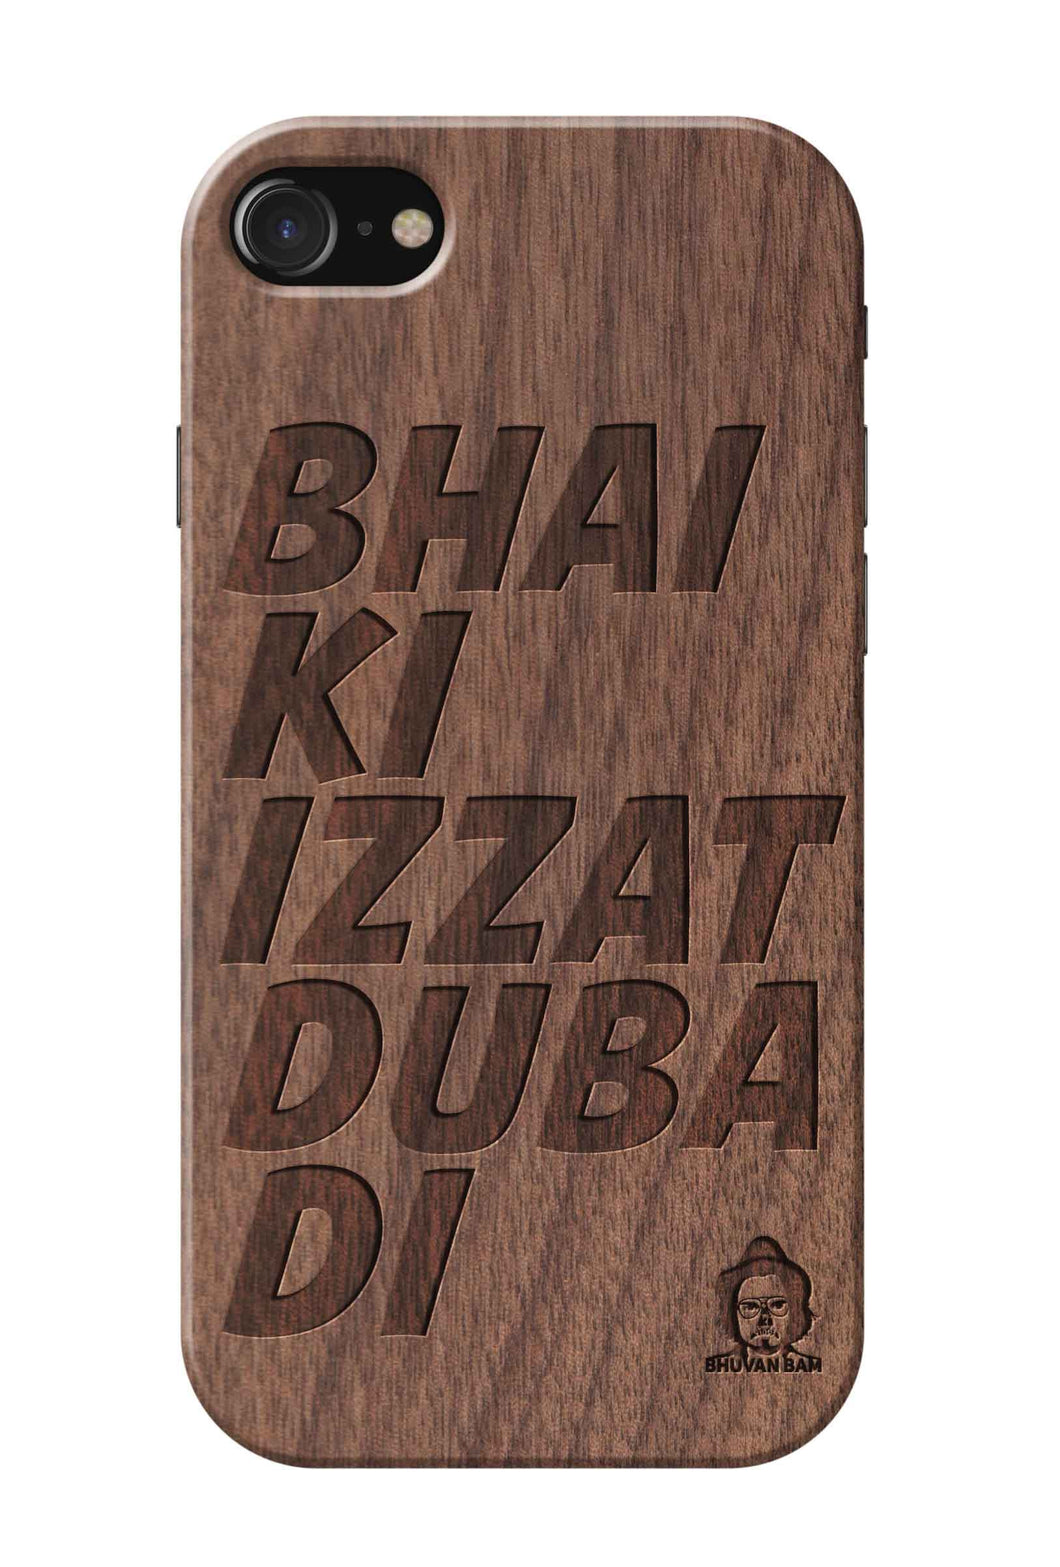 Wallnut Wood Izzat Edition for I phone 7 plus